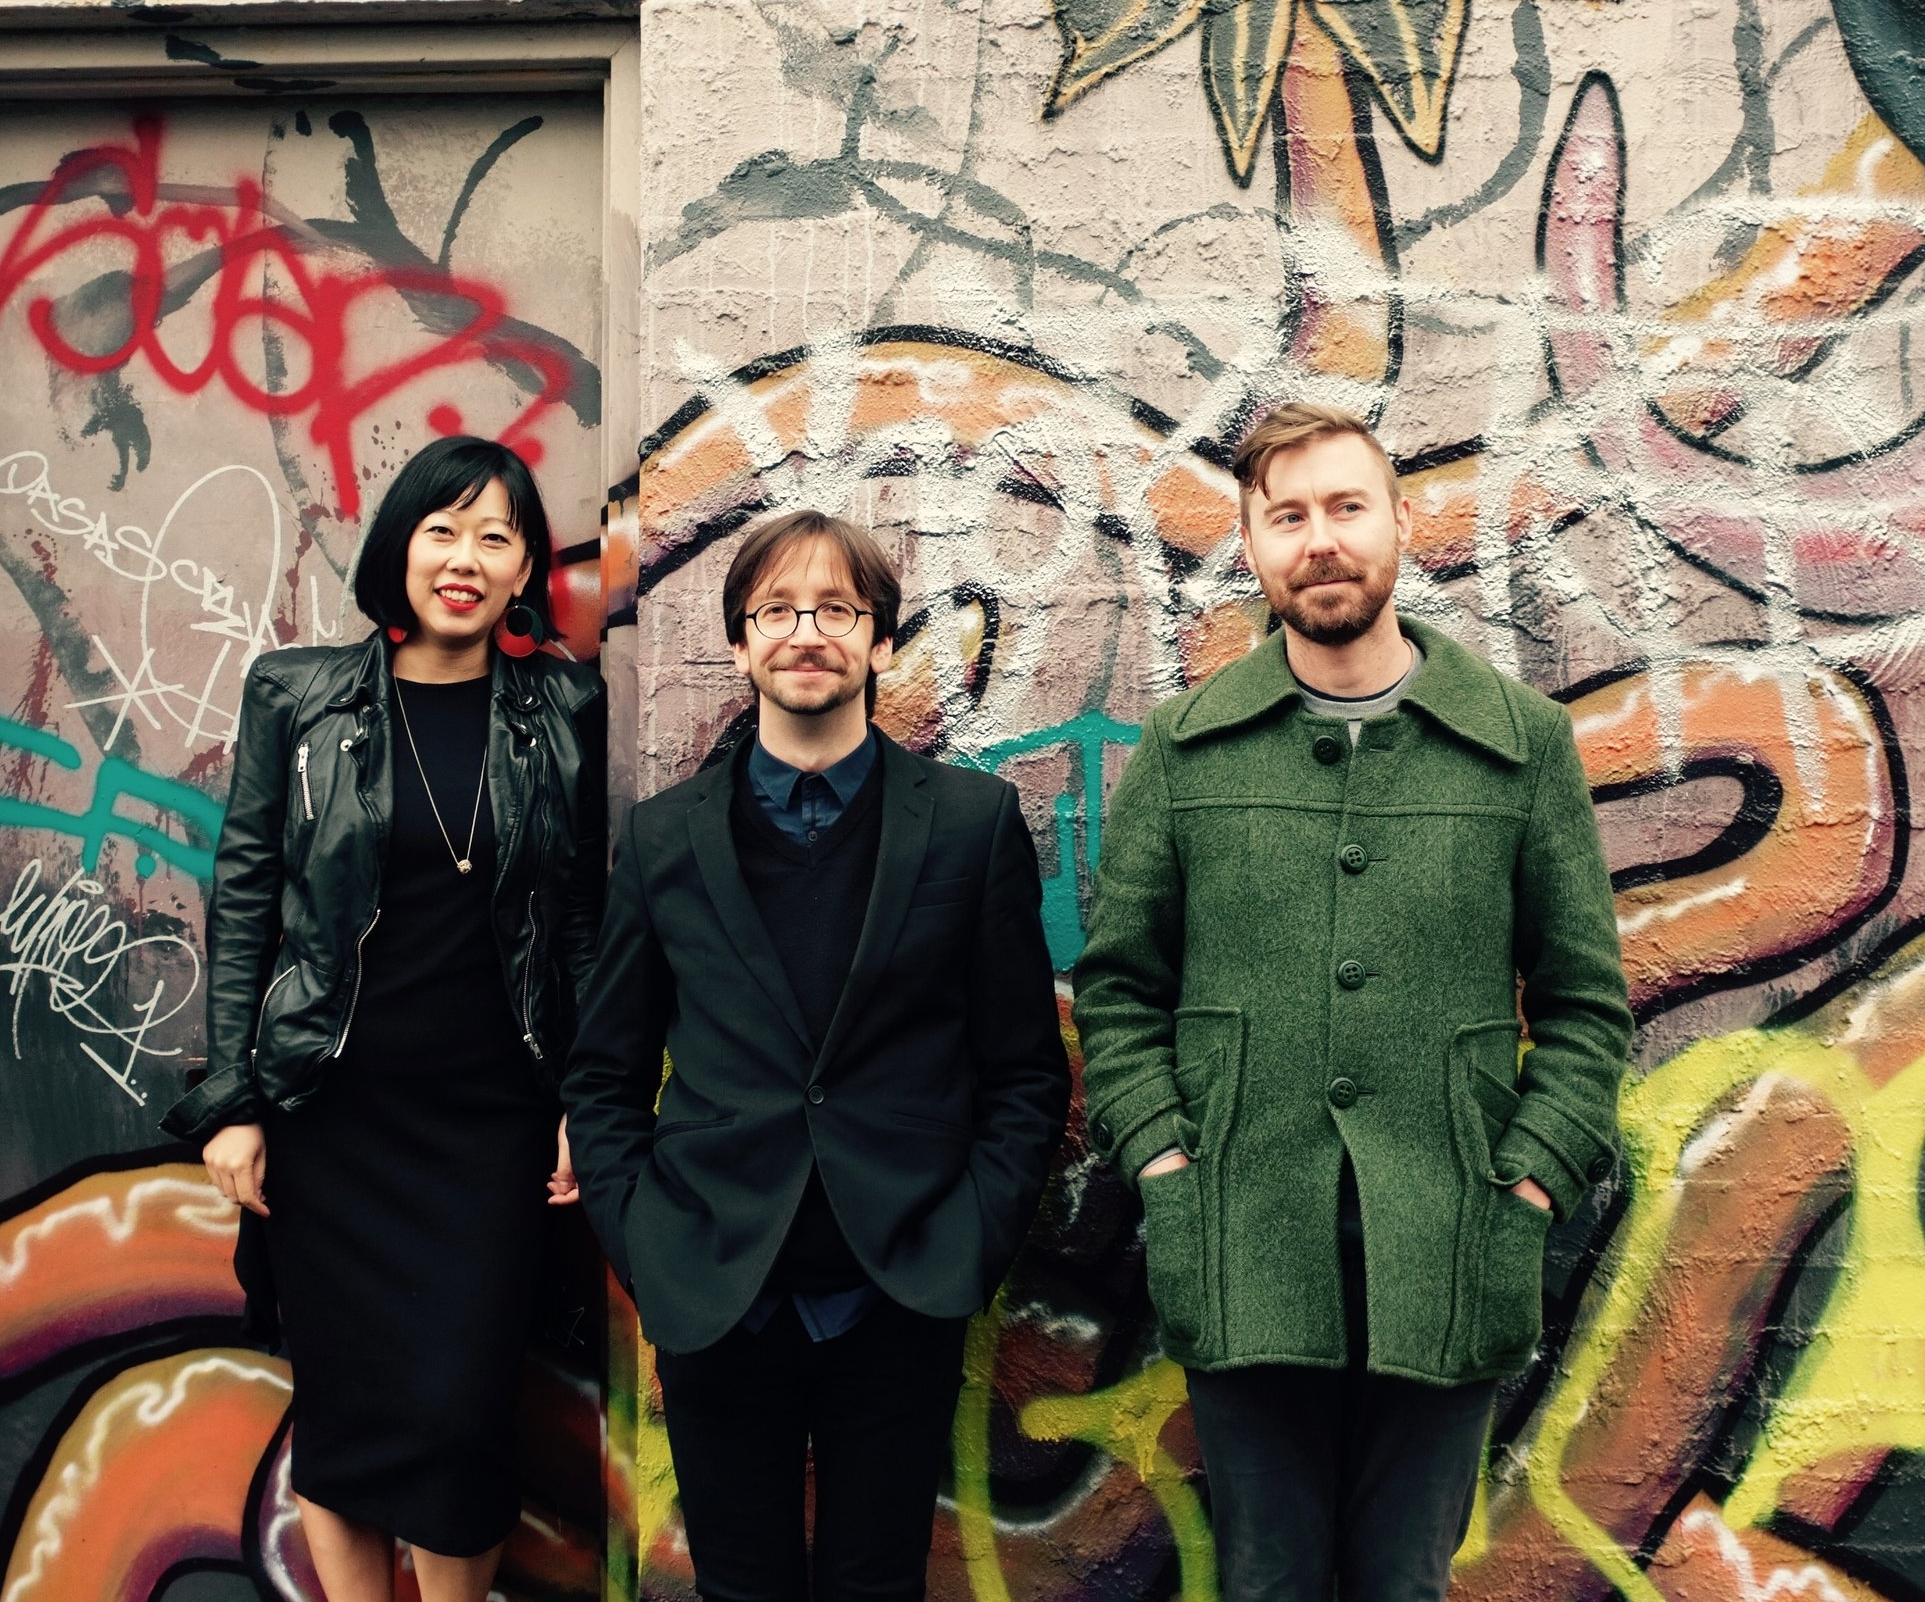 L.A.A. piano trio - Shooting some new promo photos in the streets of Yarraville. Pic by Erica Bramham.